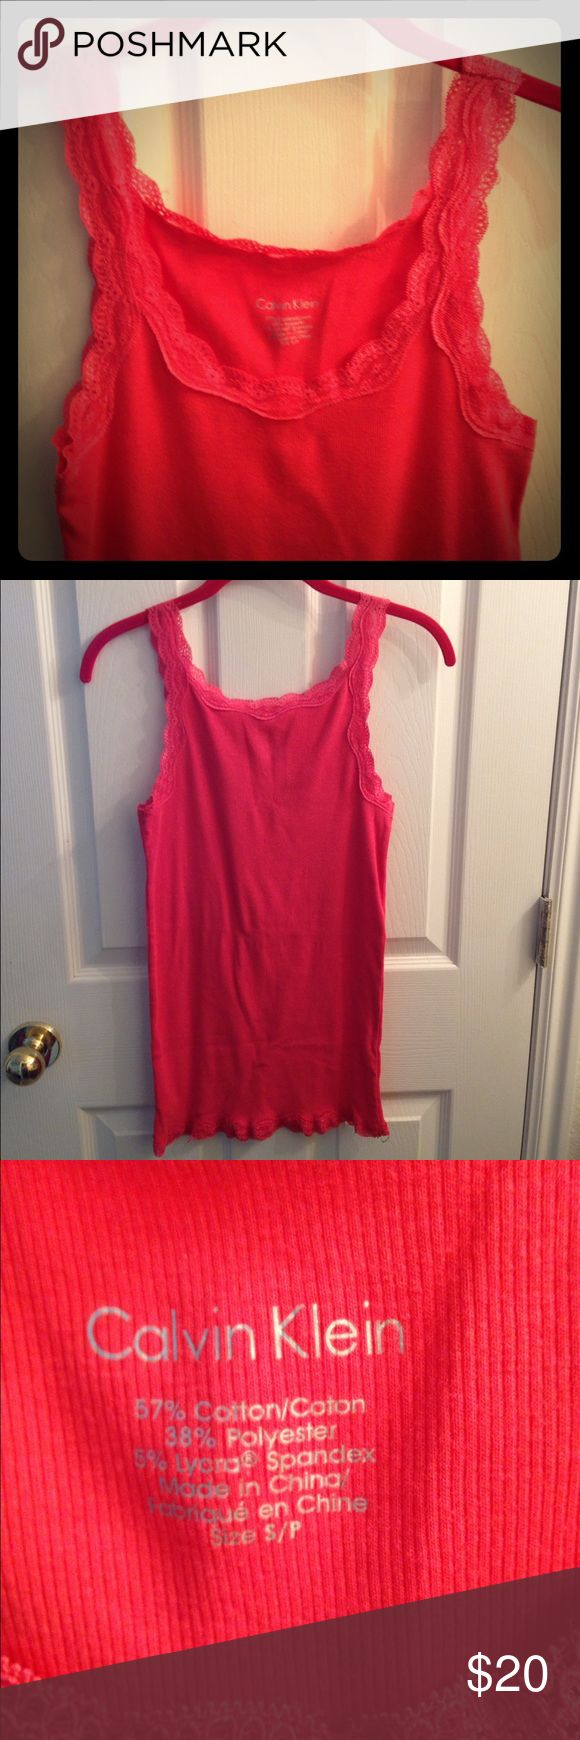 Calvin Klein Lace Tank Top A cute peach color laced tank top. Only worn once. In great condition!!! Calvin Klein Tops Tank Tops